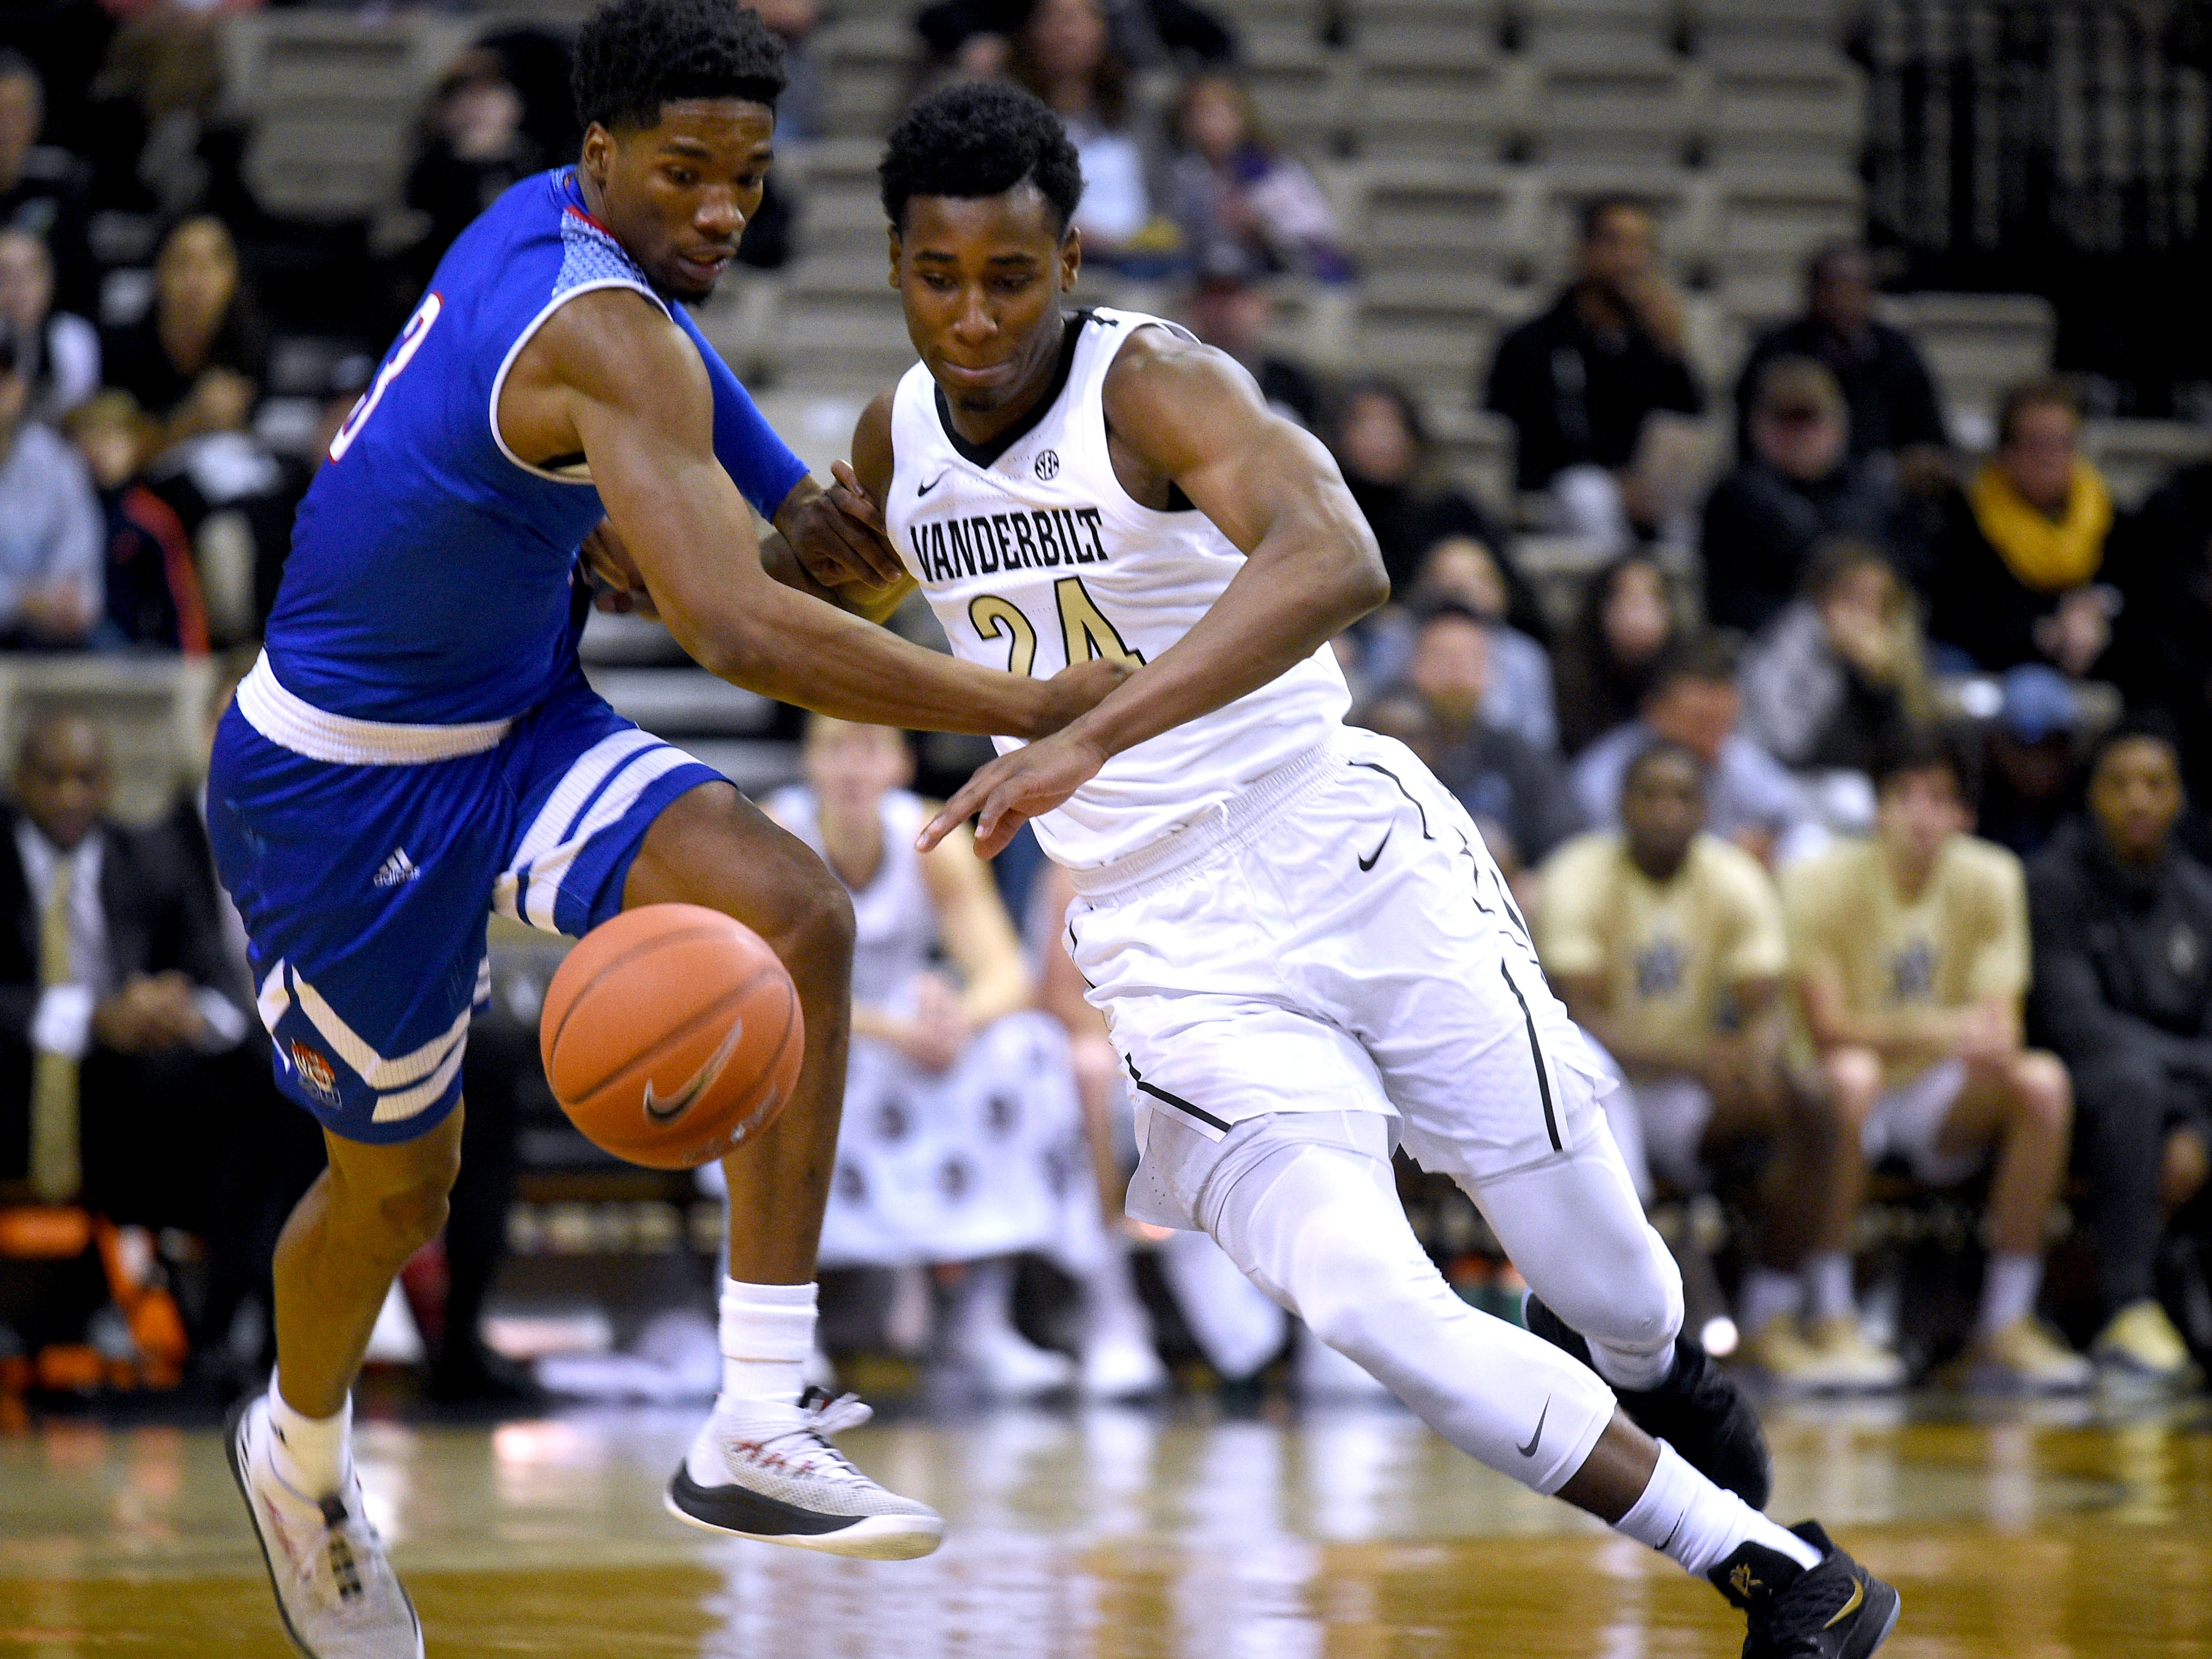 Vanderbilt forward Aaron Nesmith (24) and Tennessee State guard Donte Fitzpatrick-Dorsey (3) fight for control of the ball during a game at Memorial Gym in Nashville on Saturday, Dec. 29, 2018.